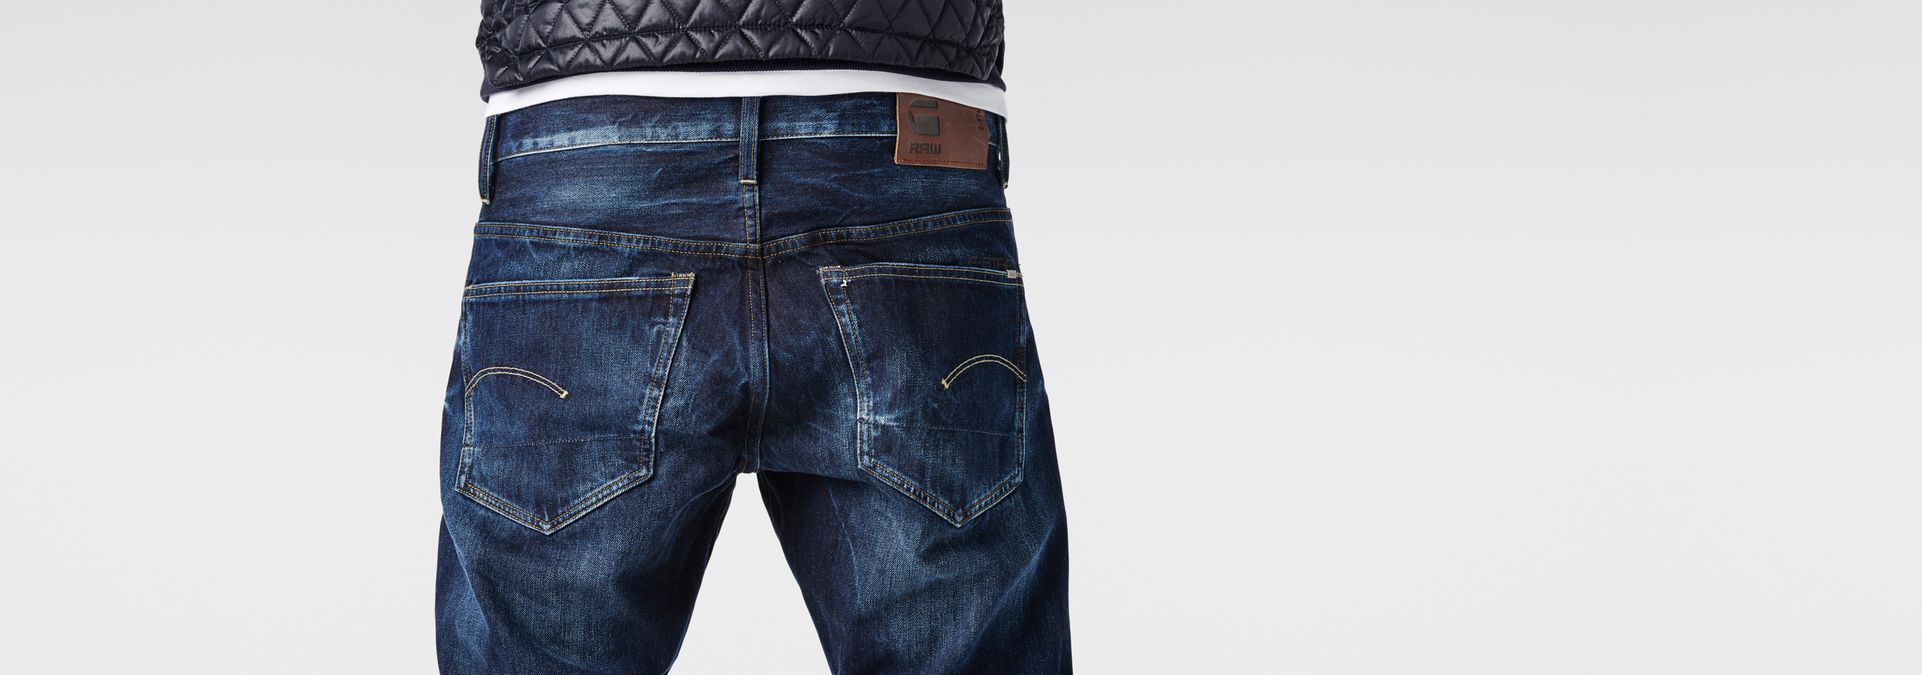 3301 tapered jeans dk aged men sale g star raw. Black Bedroom Furniture Sets. Home Design Ideas